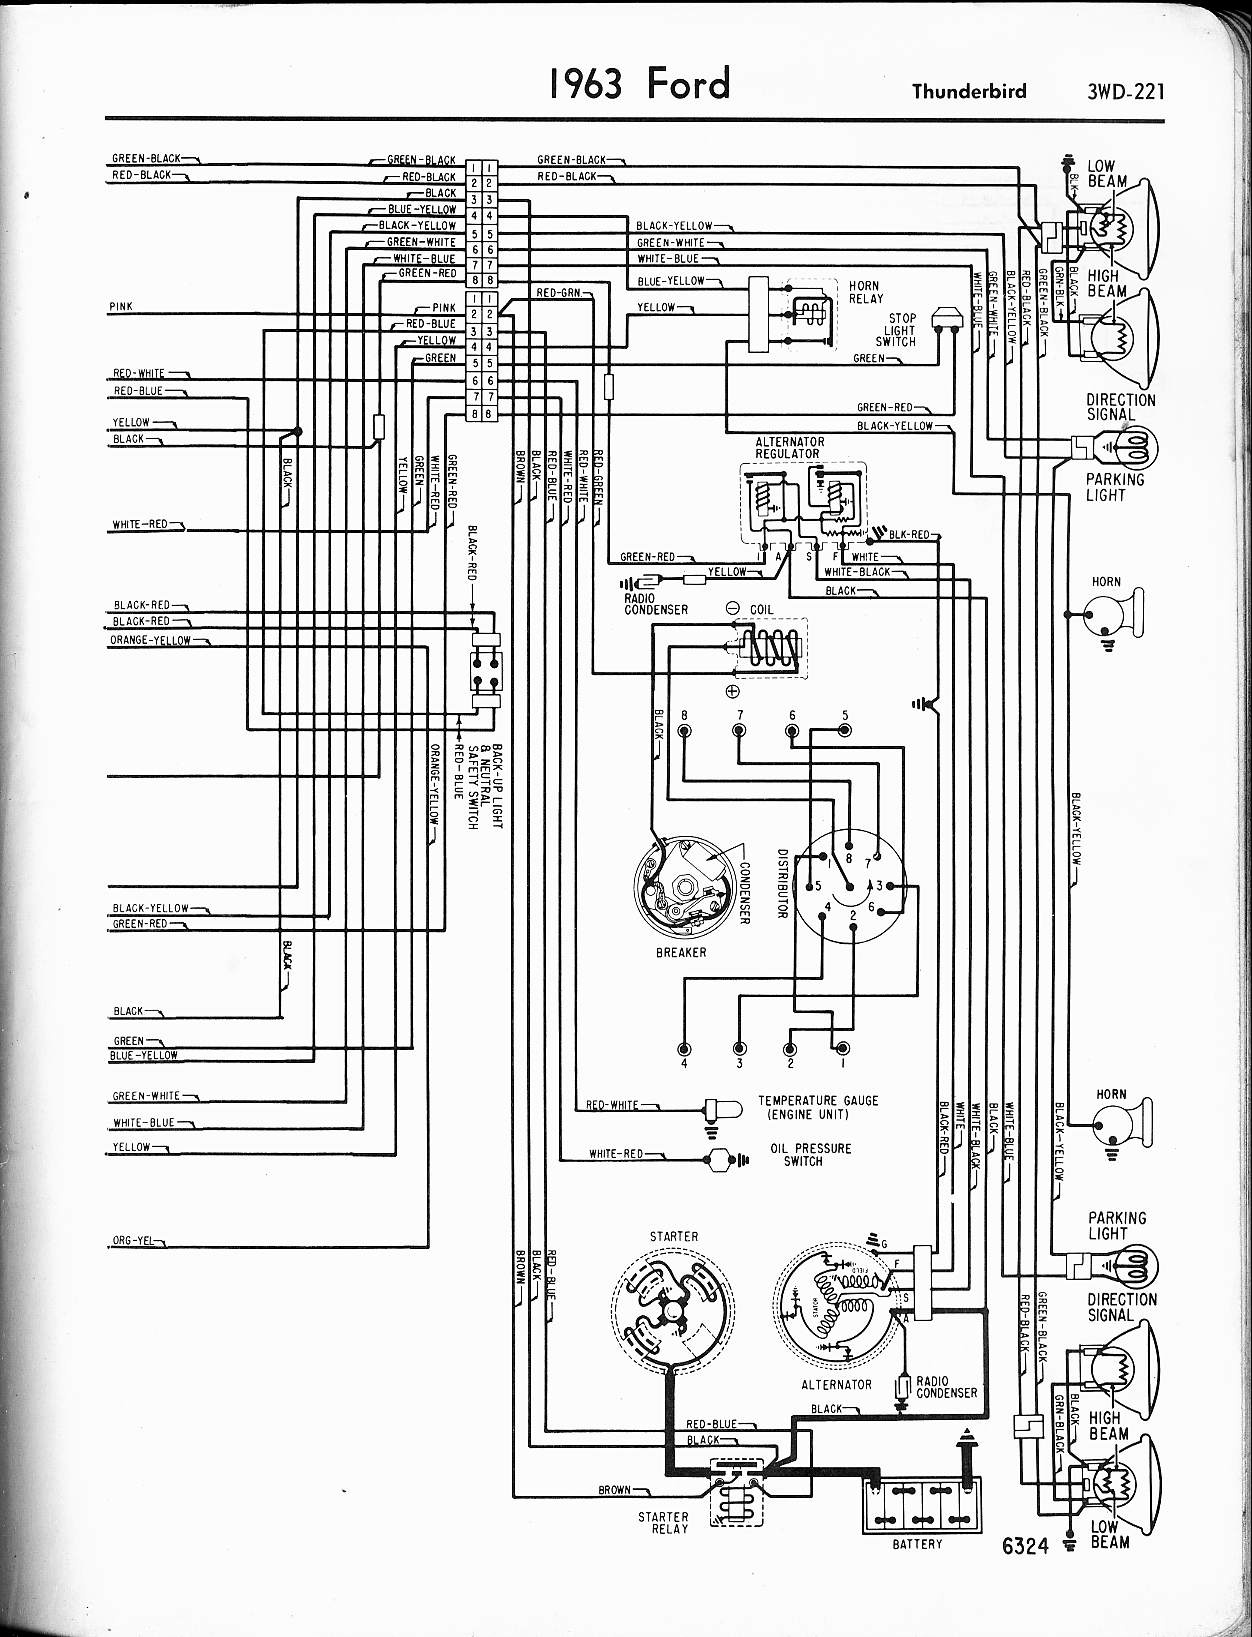 350 Chevy Alternator Wiring Diagram On 1978 Gmc Pickup Wiring Diagram